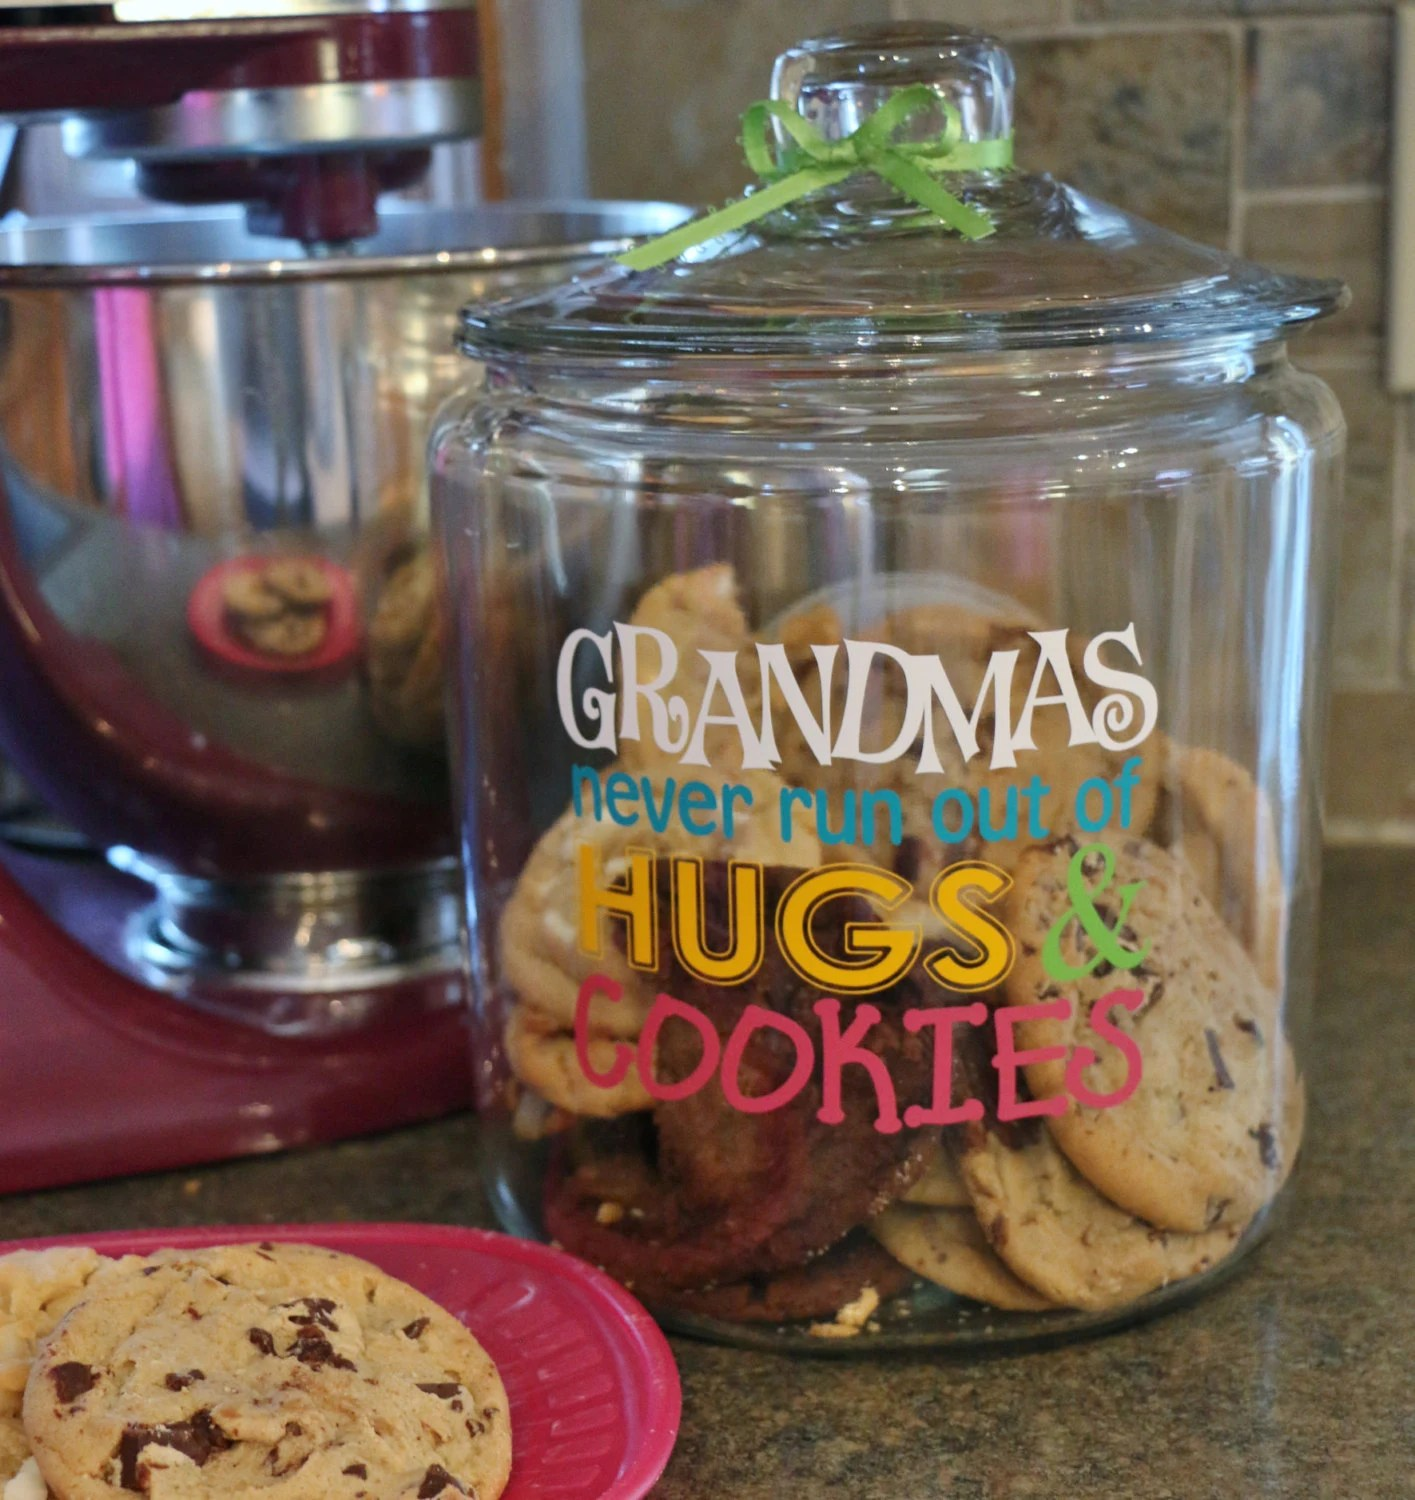 Modern Cookie Jar Svg Grandma 39s Cookies Svg Cookie Jar Design Grandmas